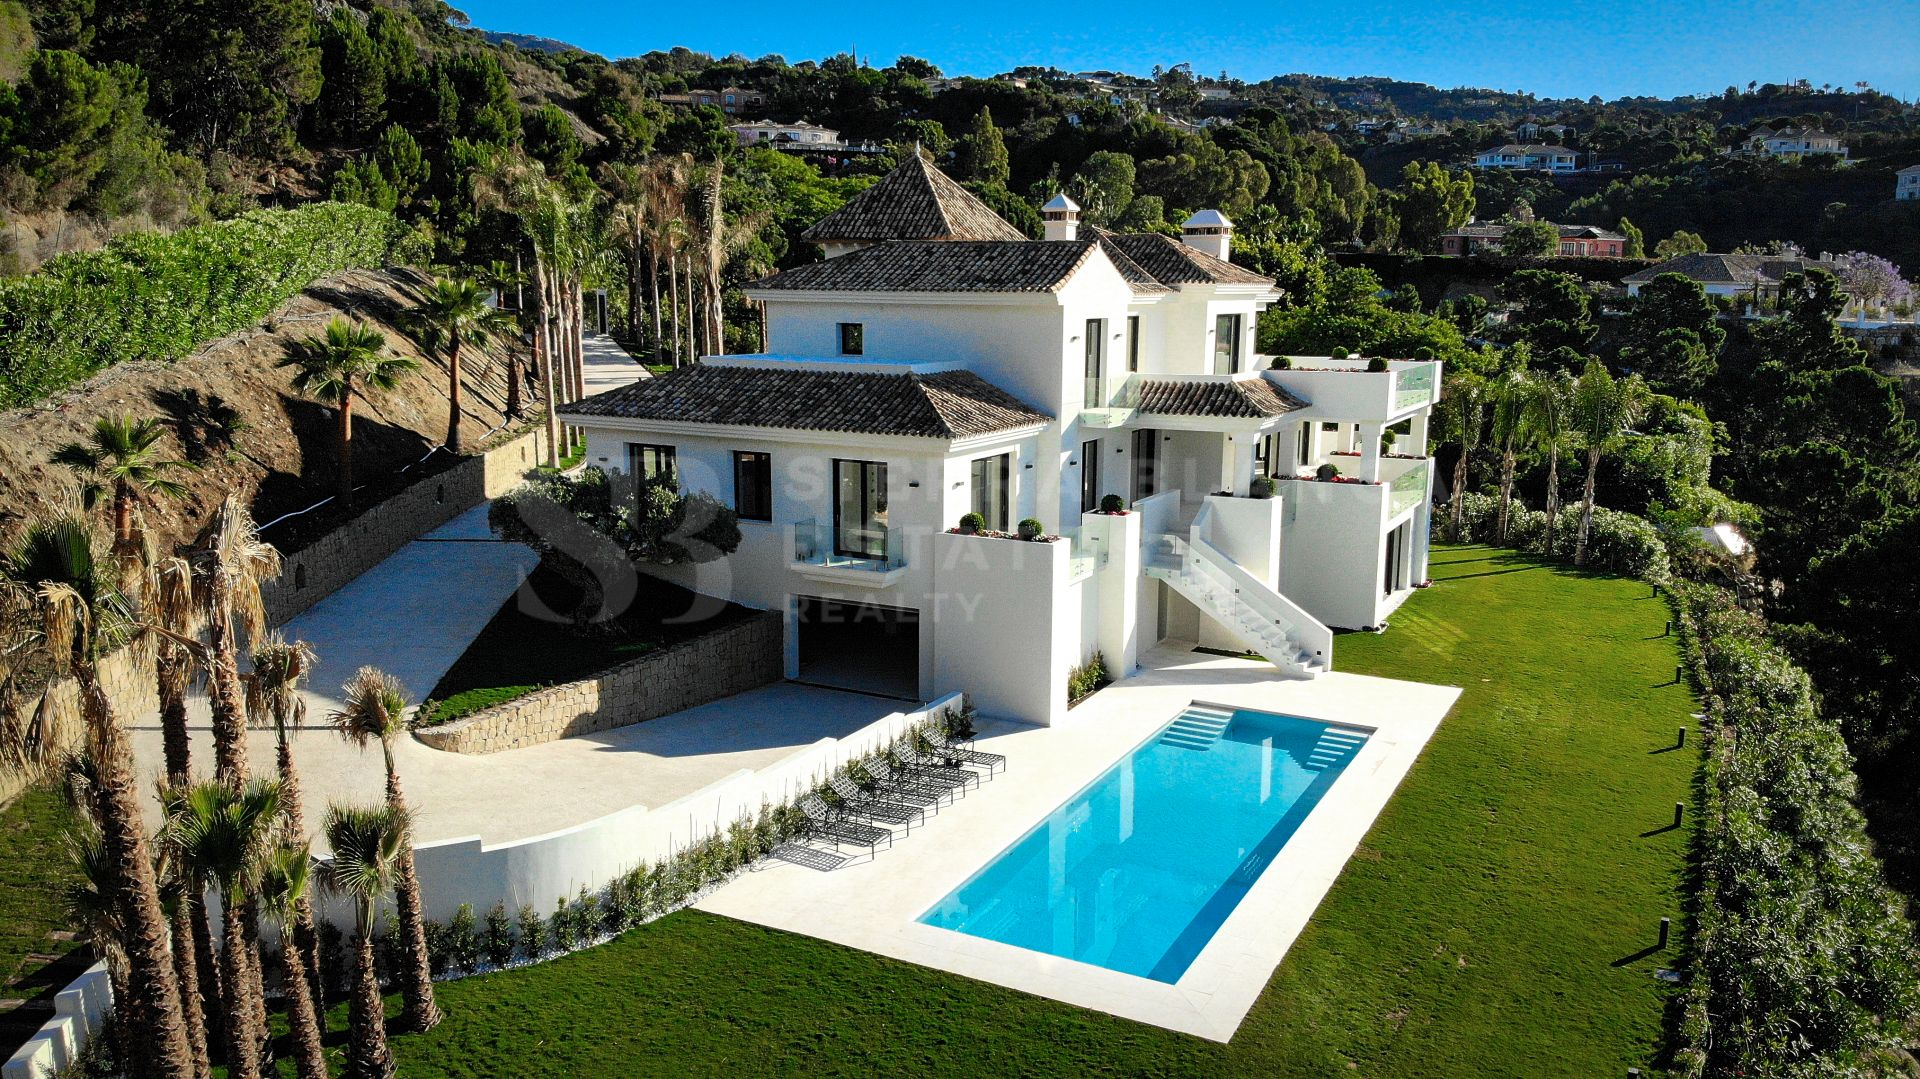 Just Completed! A Modern Villa in the Heart of La Zagaleta